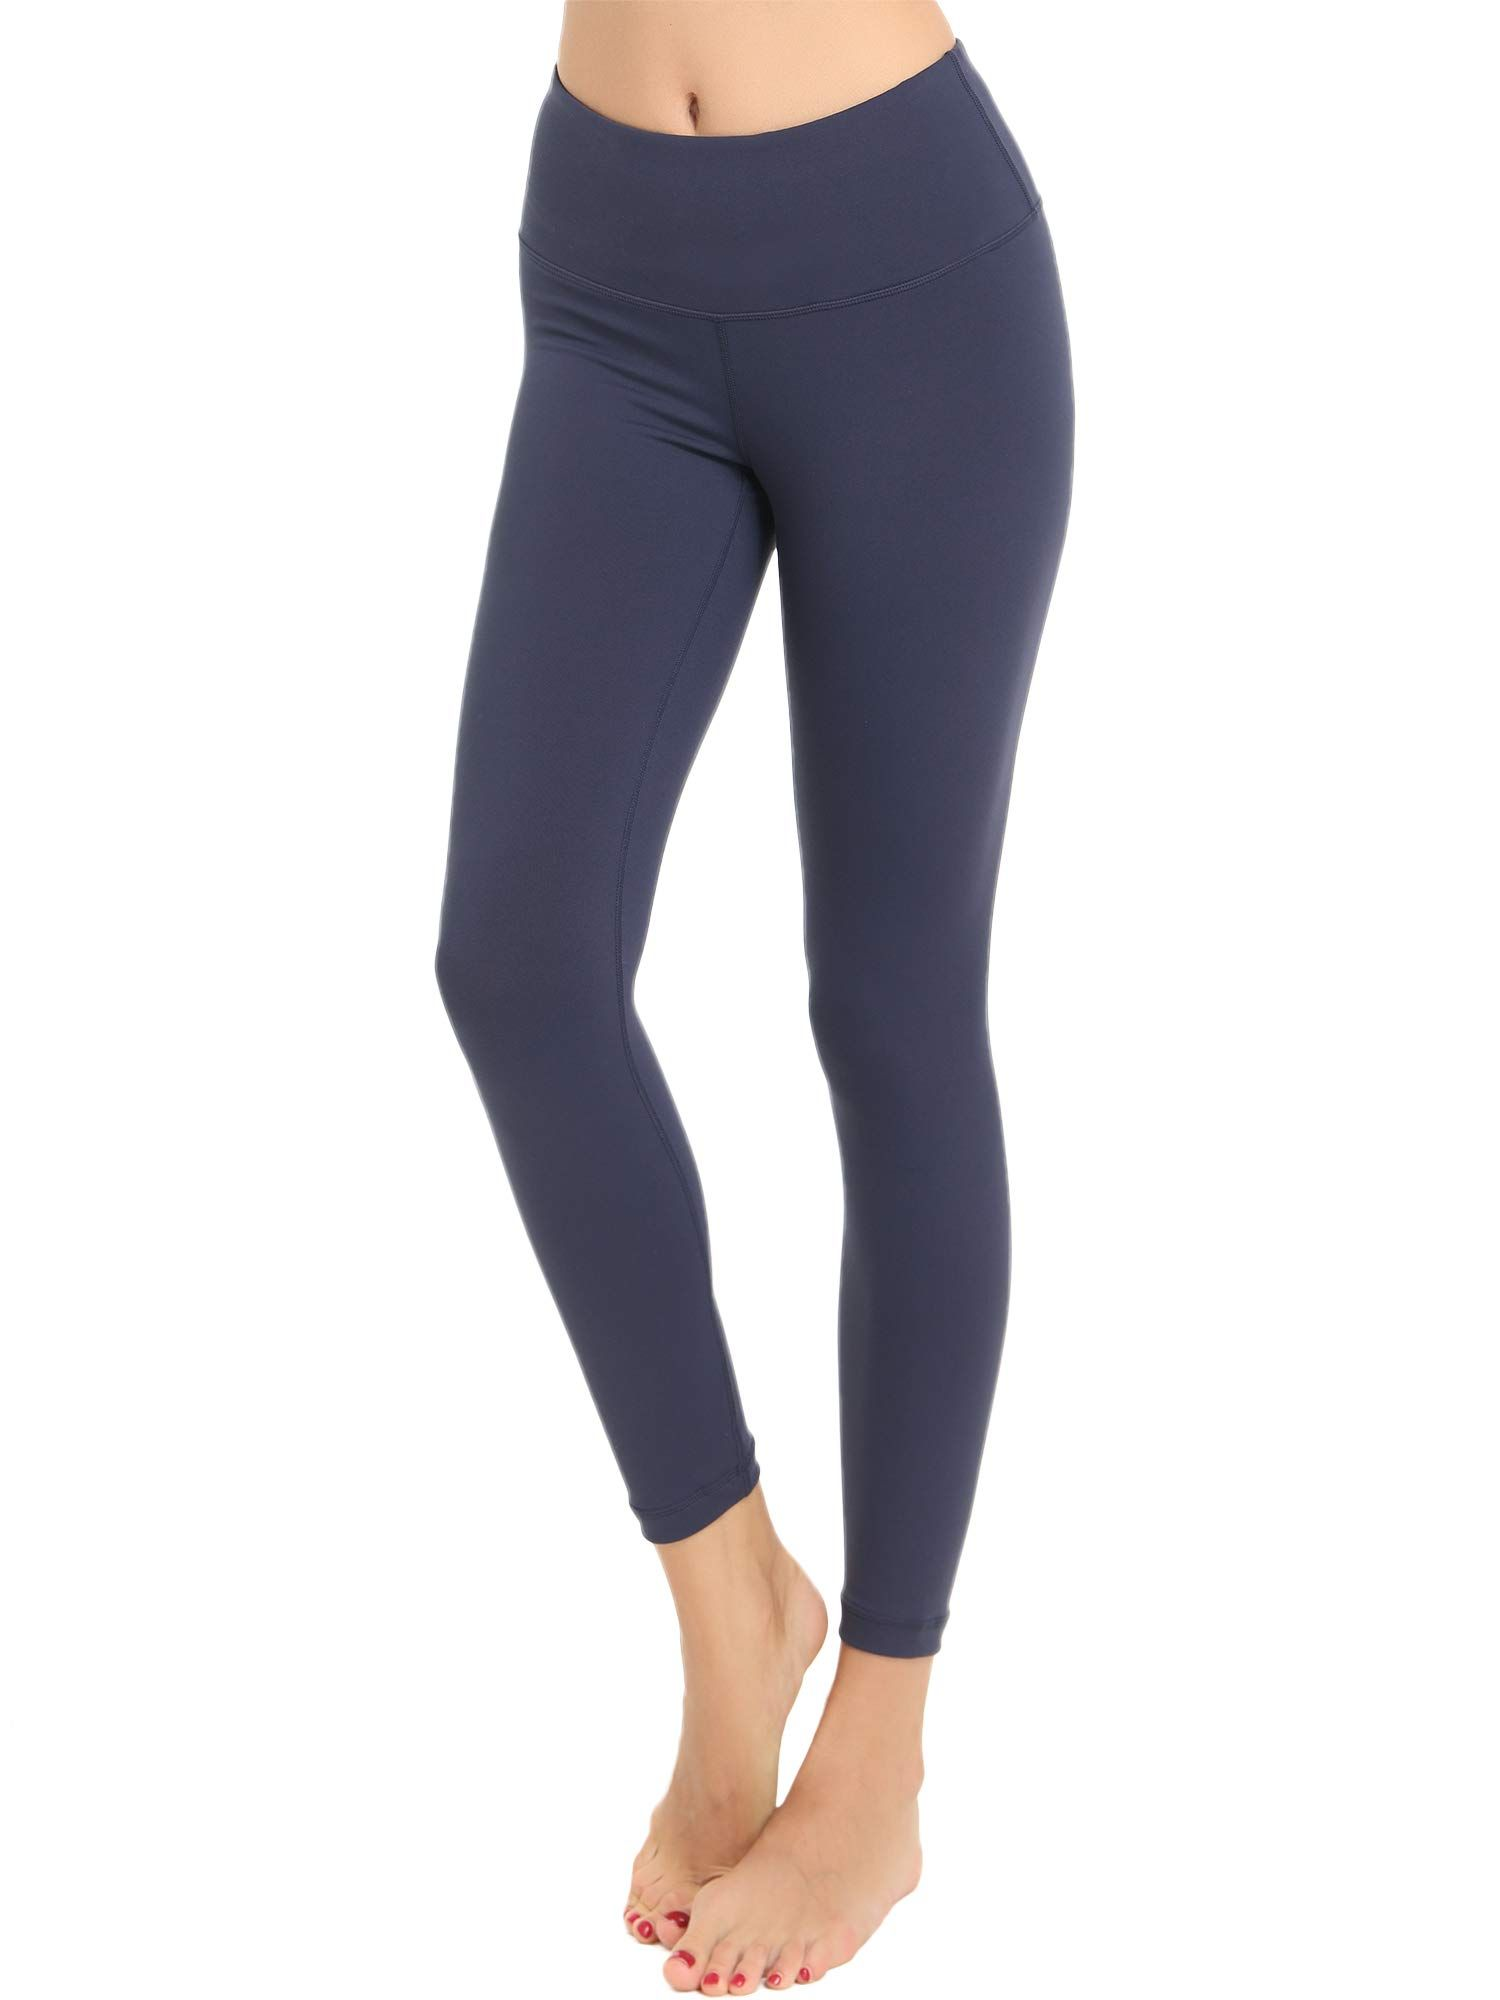 f1b3ada6d57cc Amorbella Women Yoga Pants High Waist Tummy Control Workout Yoga Leggings  Navy Medium ** Want to know more, click on the image. (This is an affiliate  link)